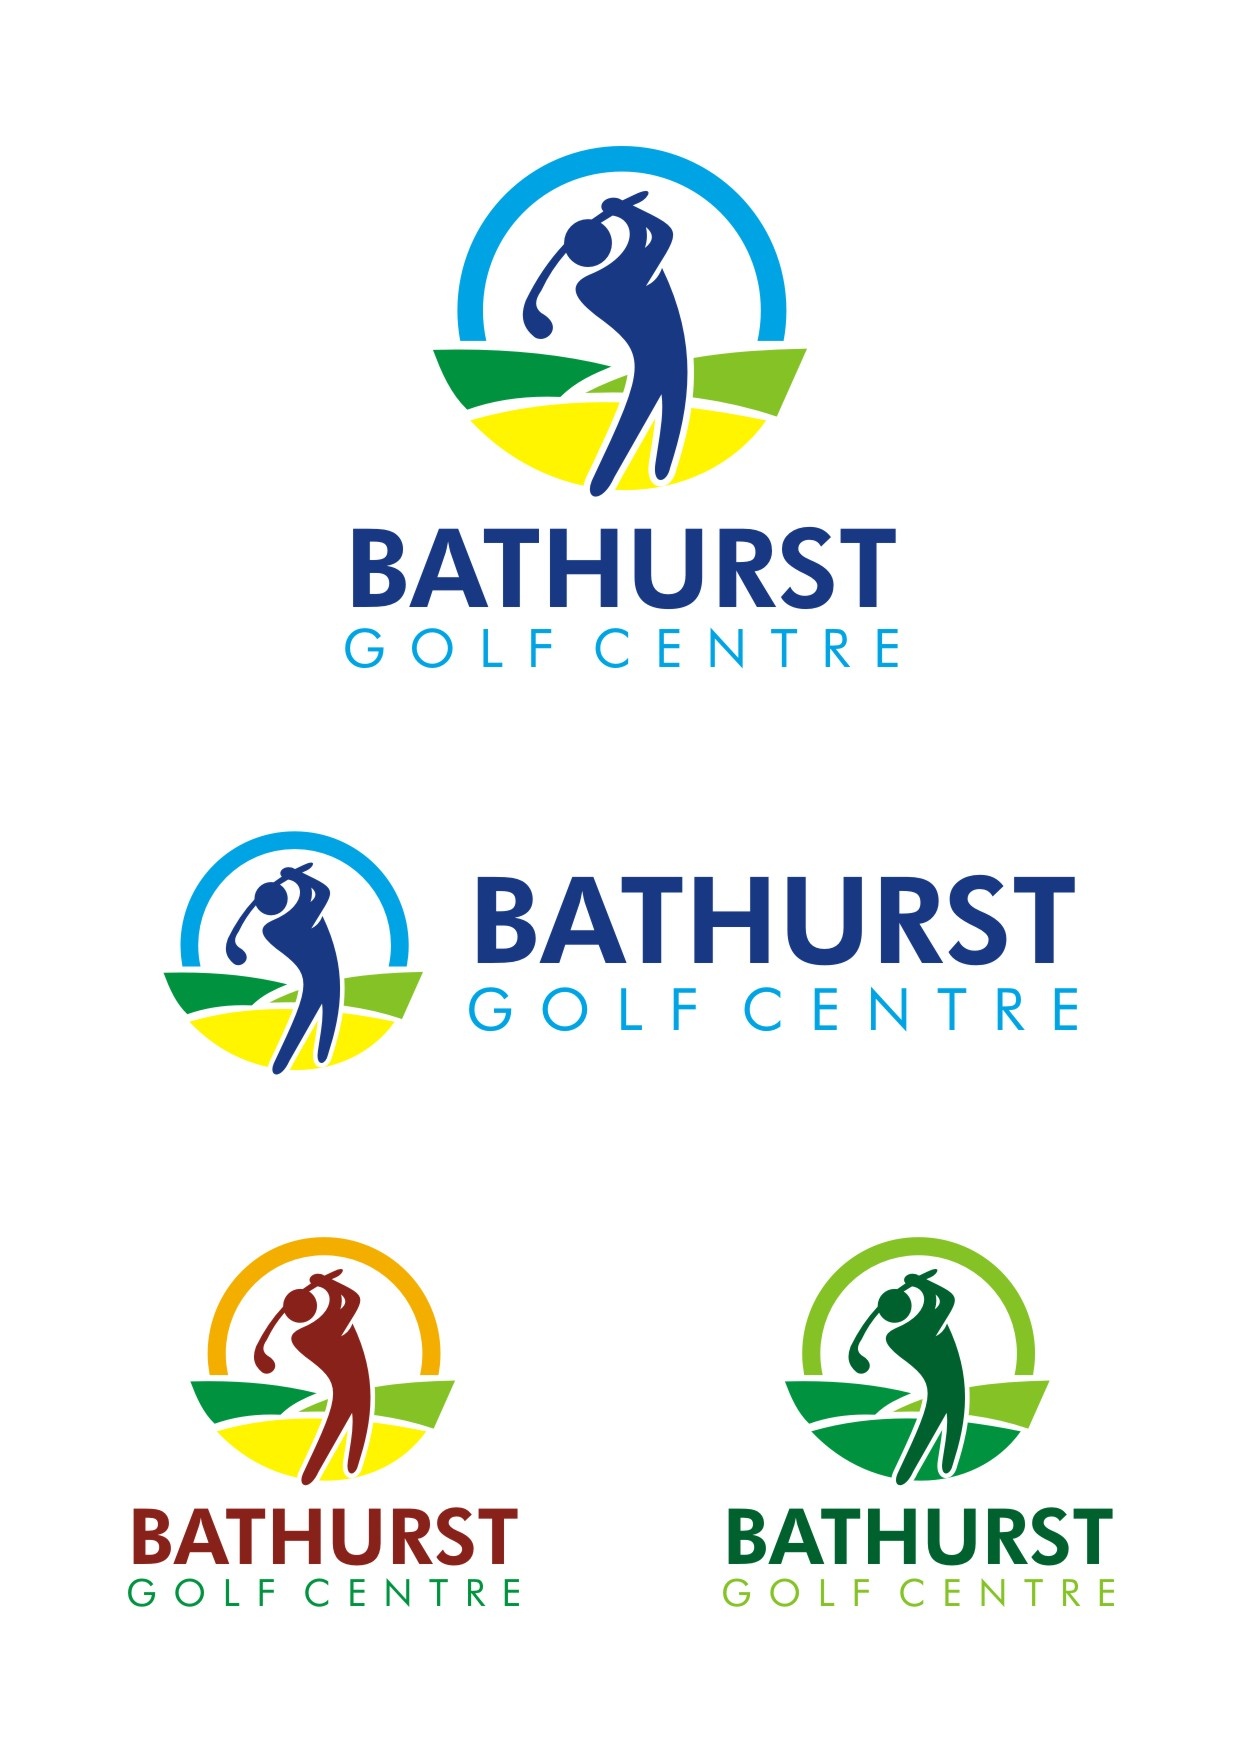 Logo Design by Spider Graphics - Entry No. 97 in the Logo Design Contest Inspiring Logo Design for Bathurst Golf Centre.